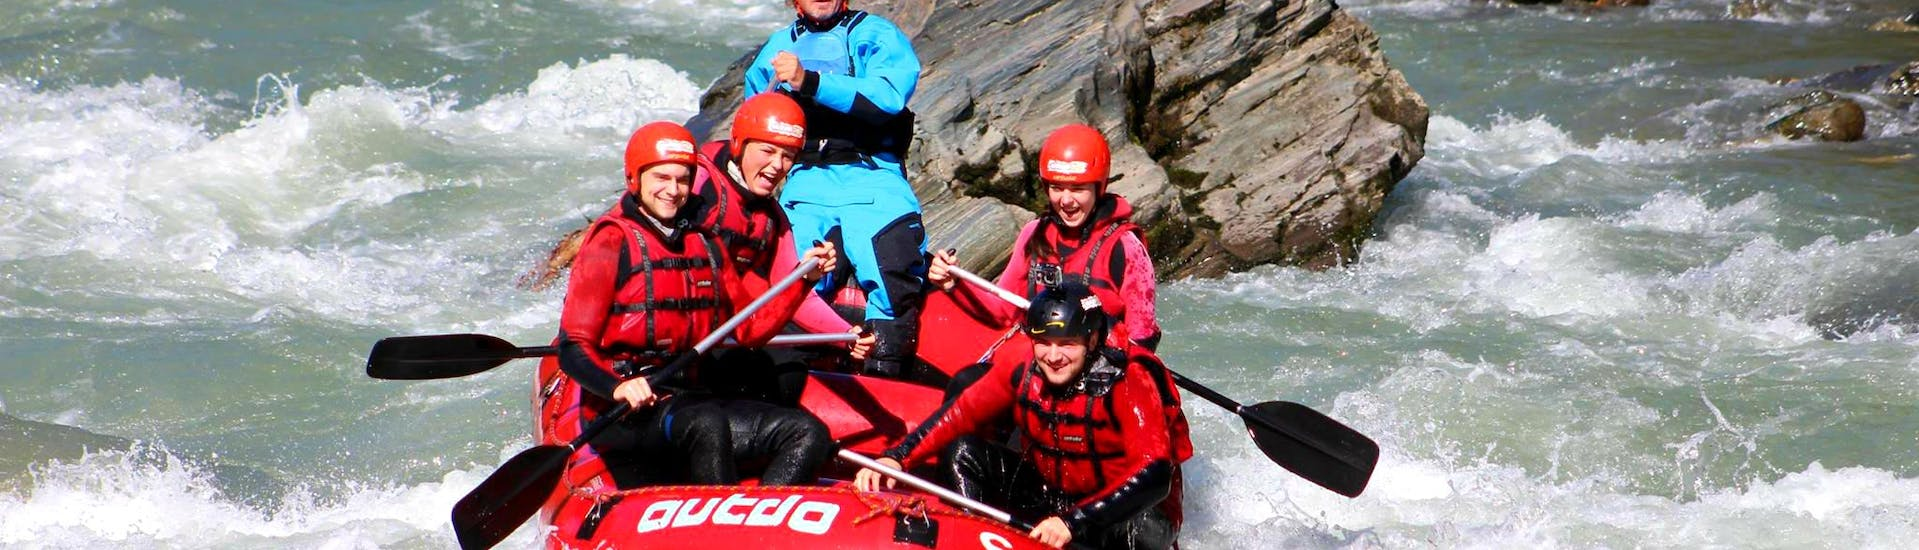 """A rafting group conquering the waves and rapids of Salzach river on their Rafting Tour """"Wild Water"""" together with an experienced guide from Outdo Zell am See Rating & Canyoning."""